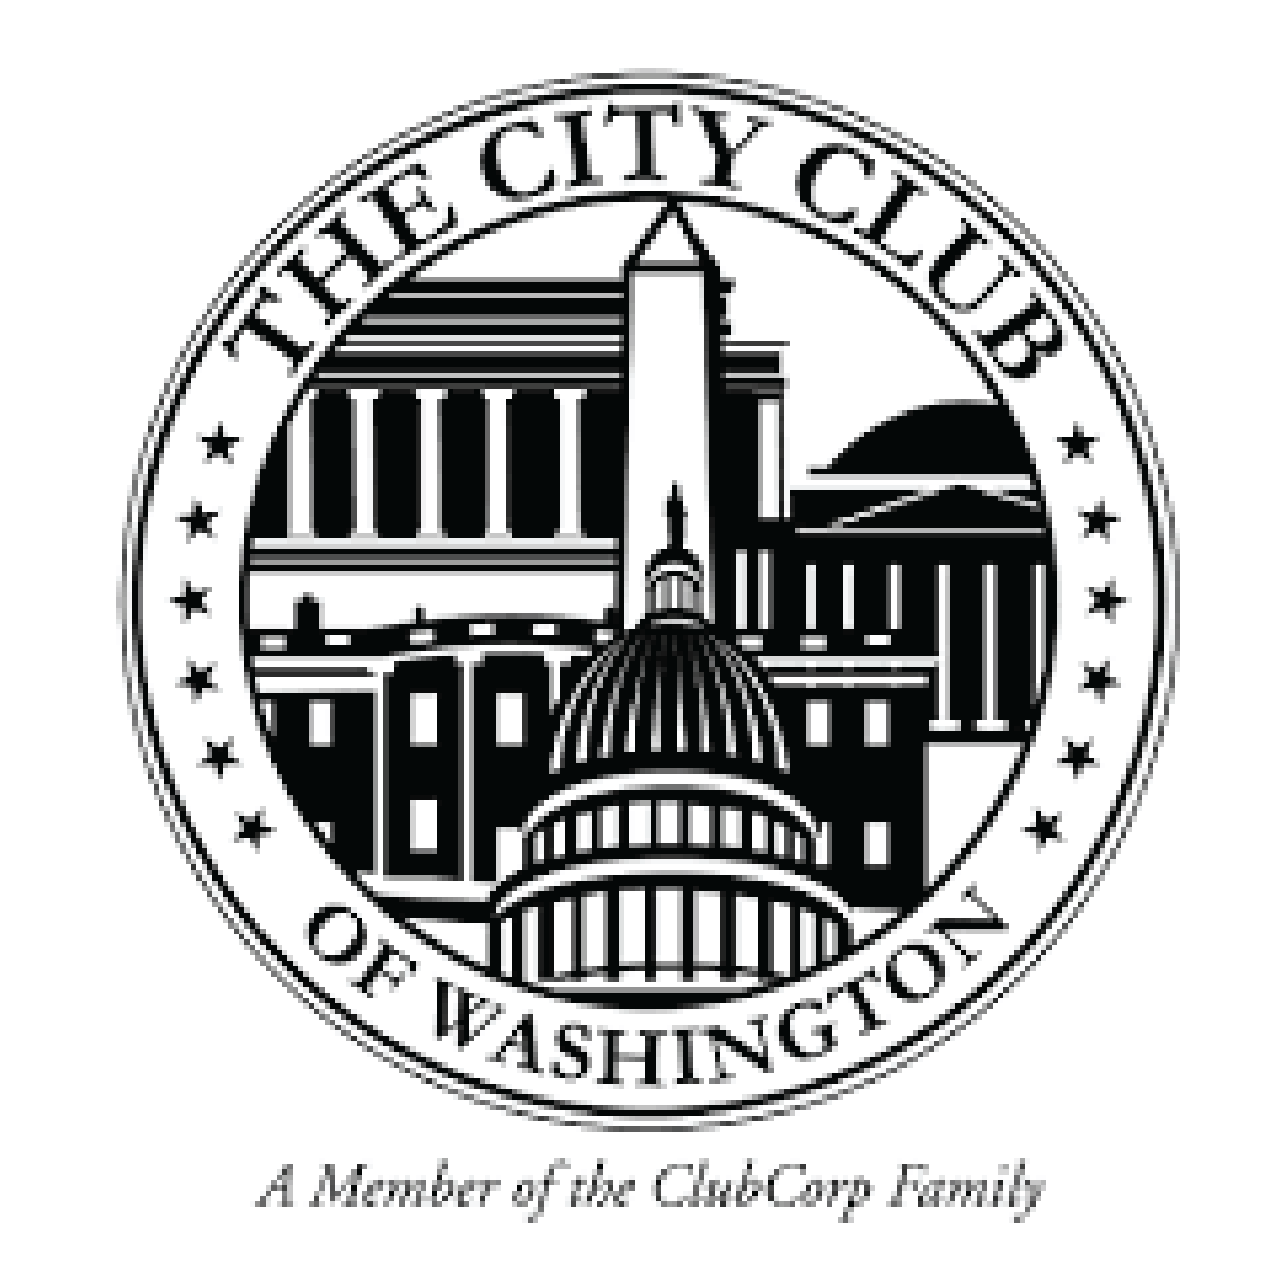 The City Club of Washington